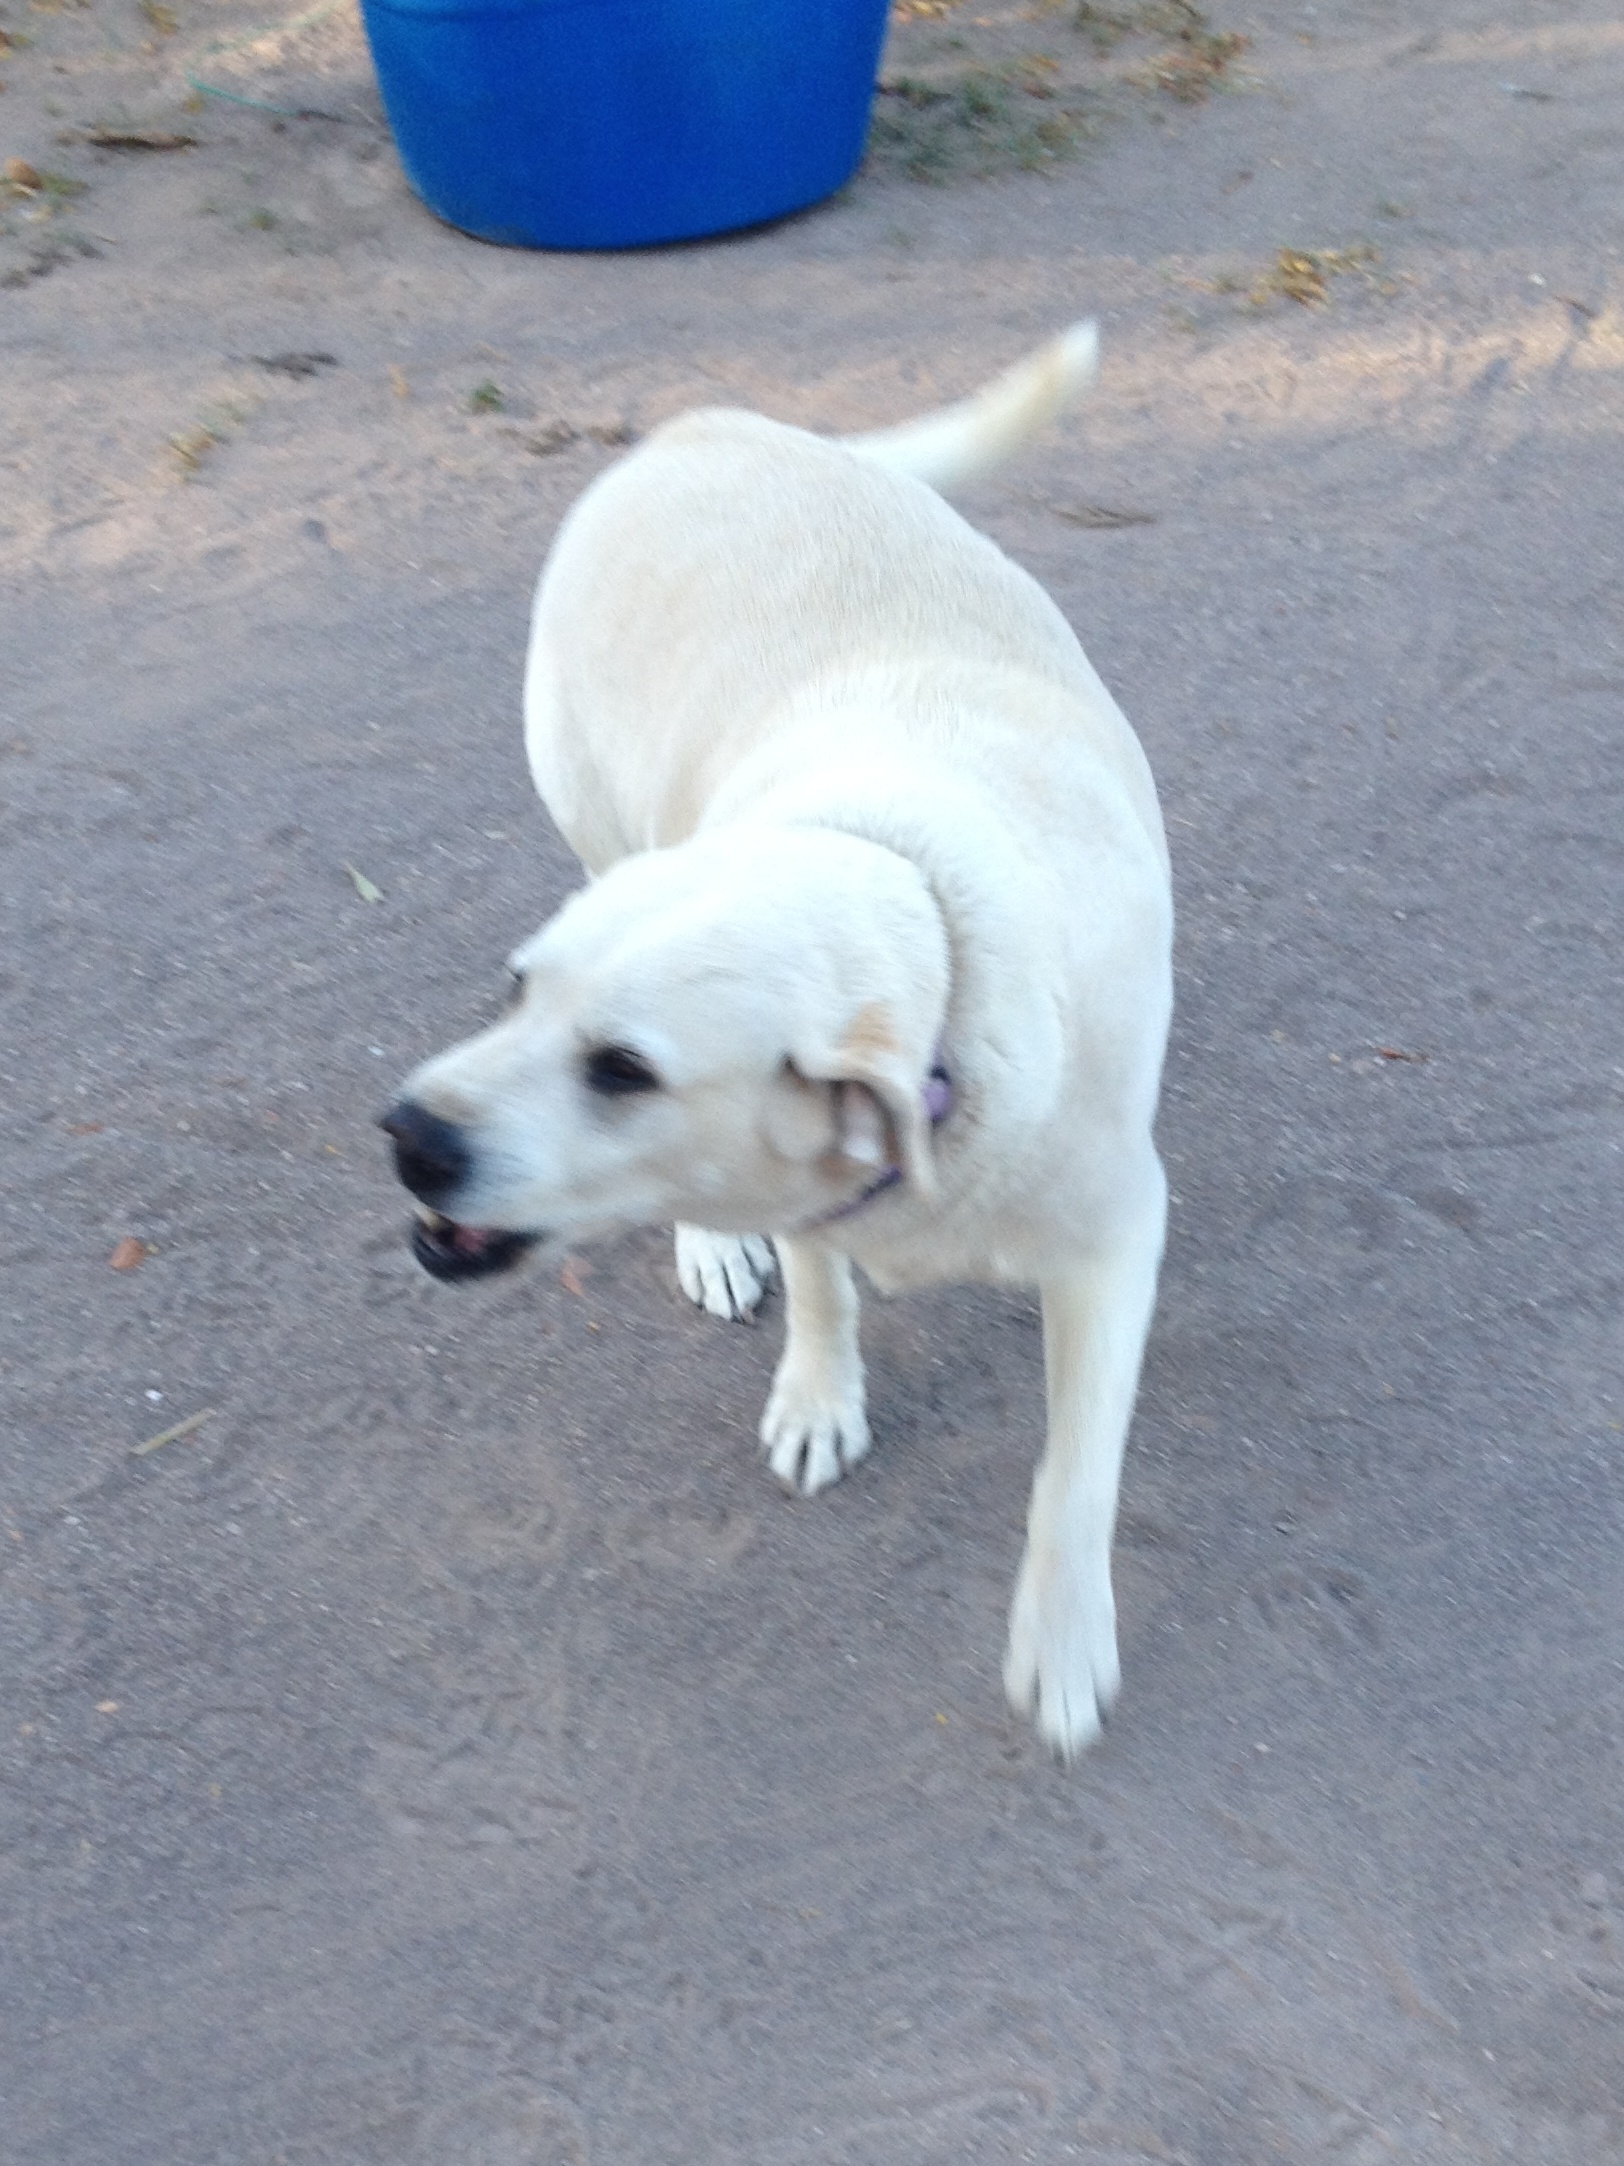 This is one of the dogs at the RV park, I nick named him Polar Bear, his real name is Juniper.